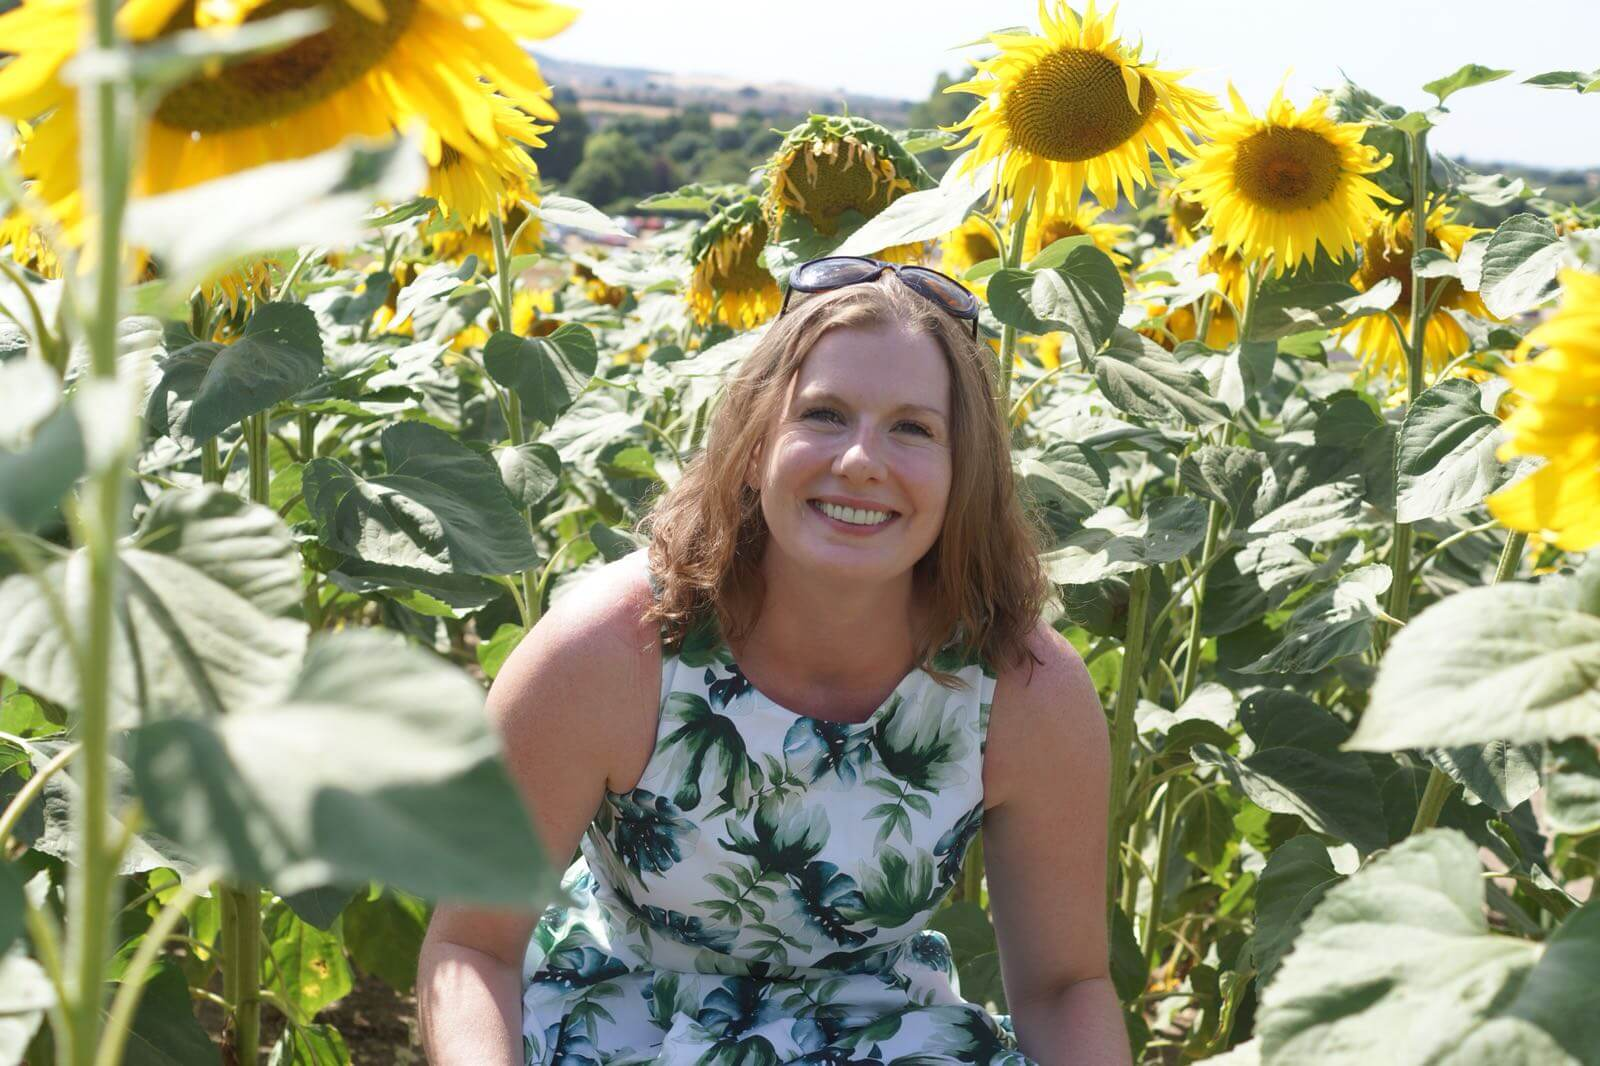 Stephanie smiling beside sunflowers